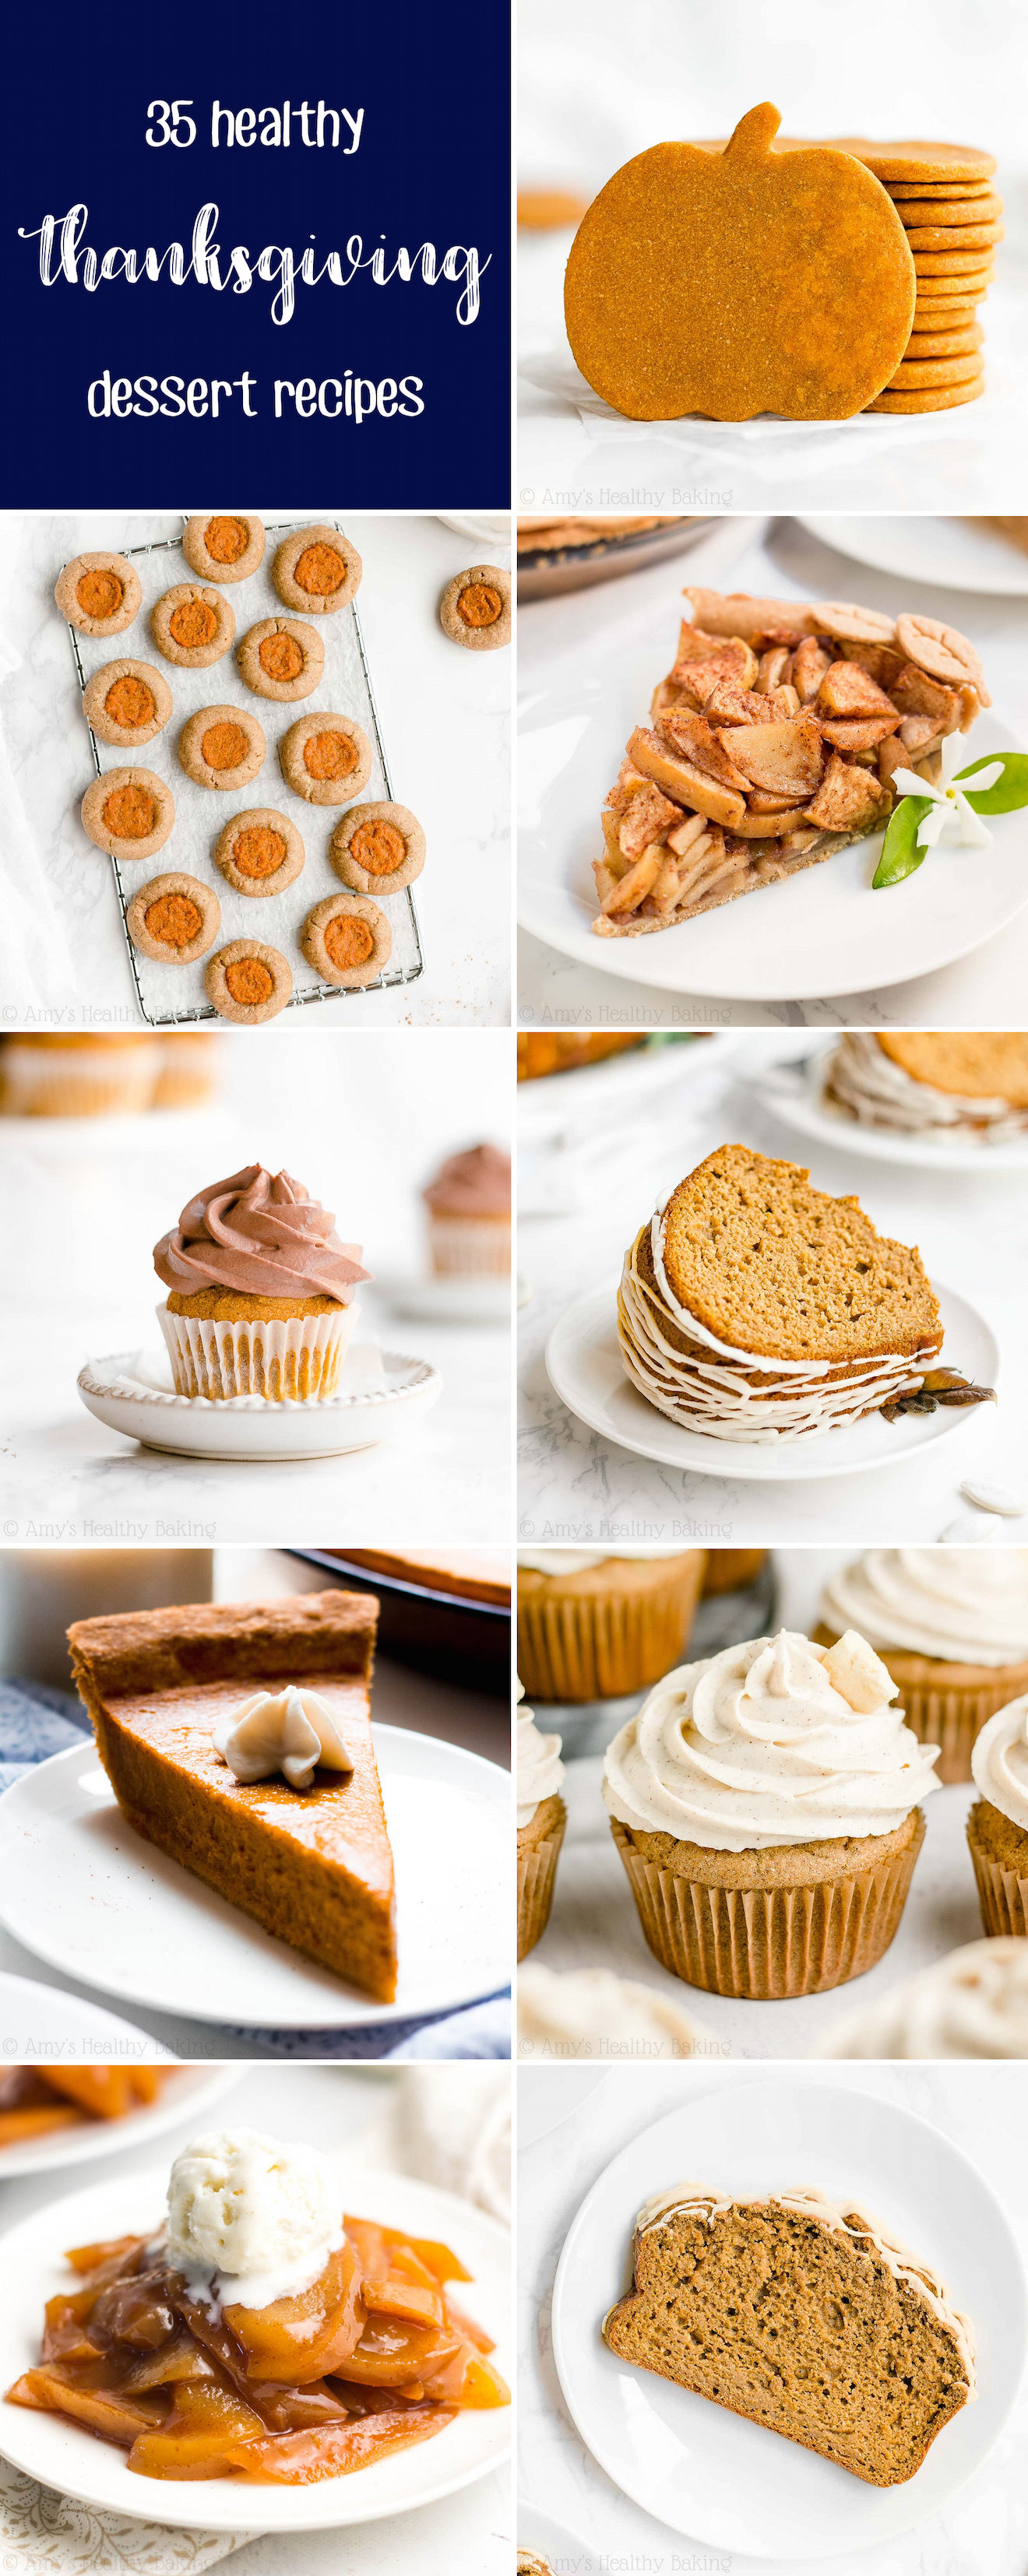 35 Best Easy Healthy Clean Eating Low Calorie Thanksgiving Dessert Recipes